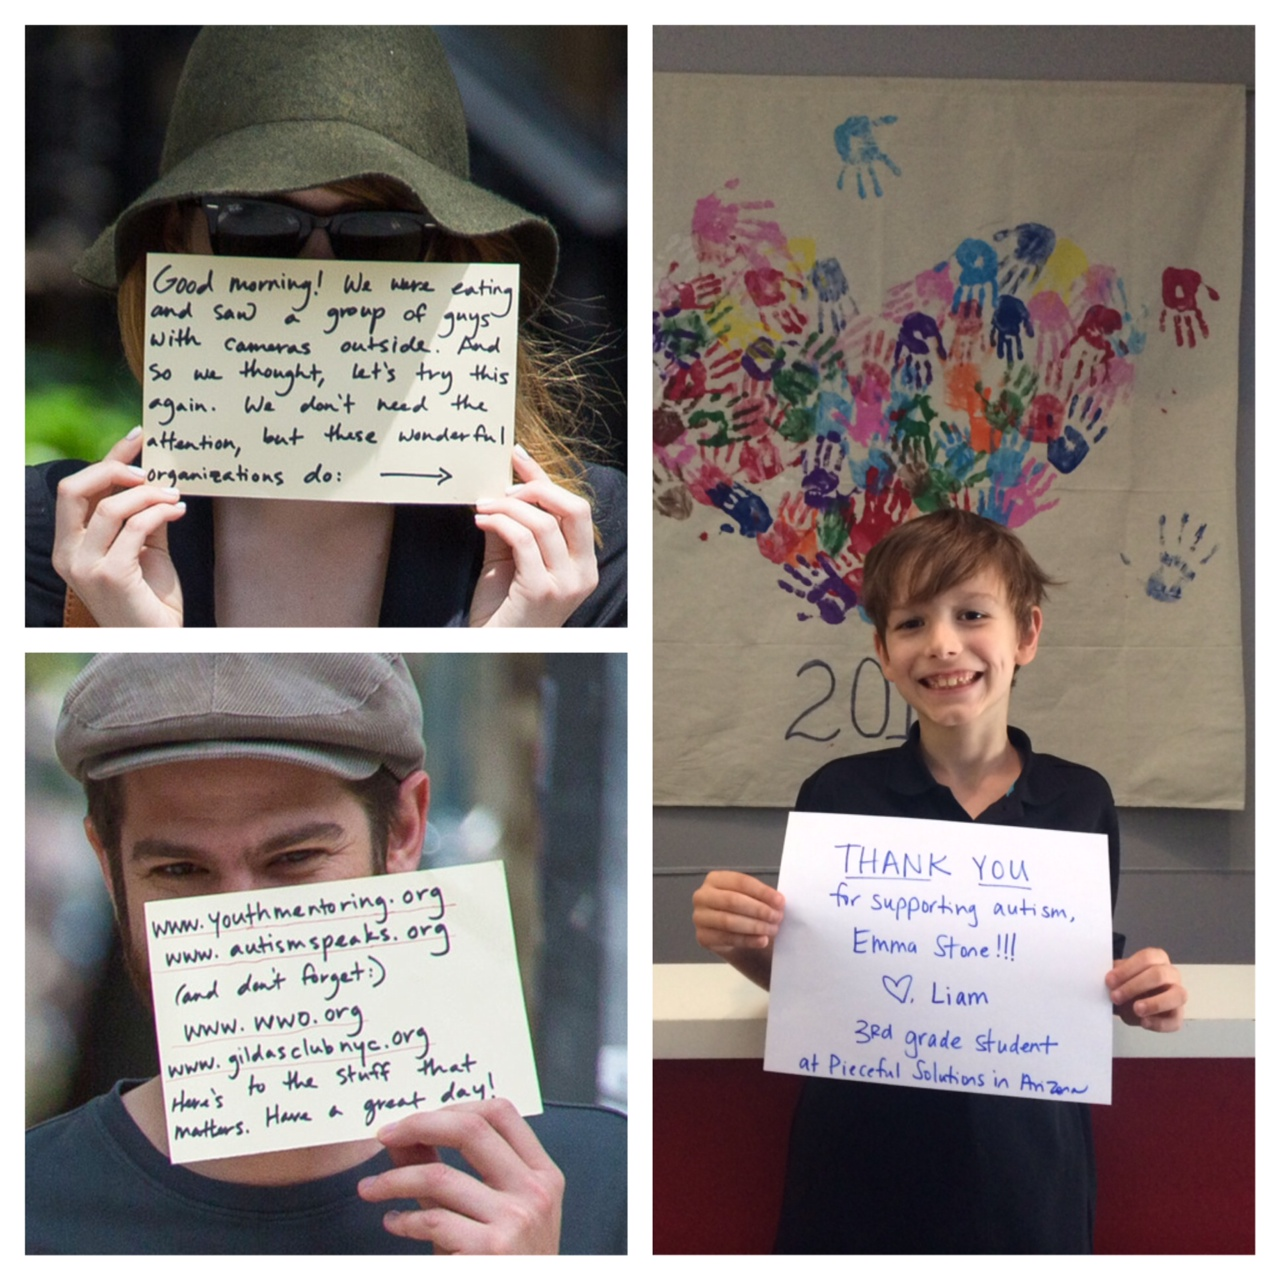 Emma Stone and Andrew Garfield are using their visibility to raise awareness of Autism